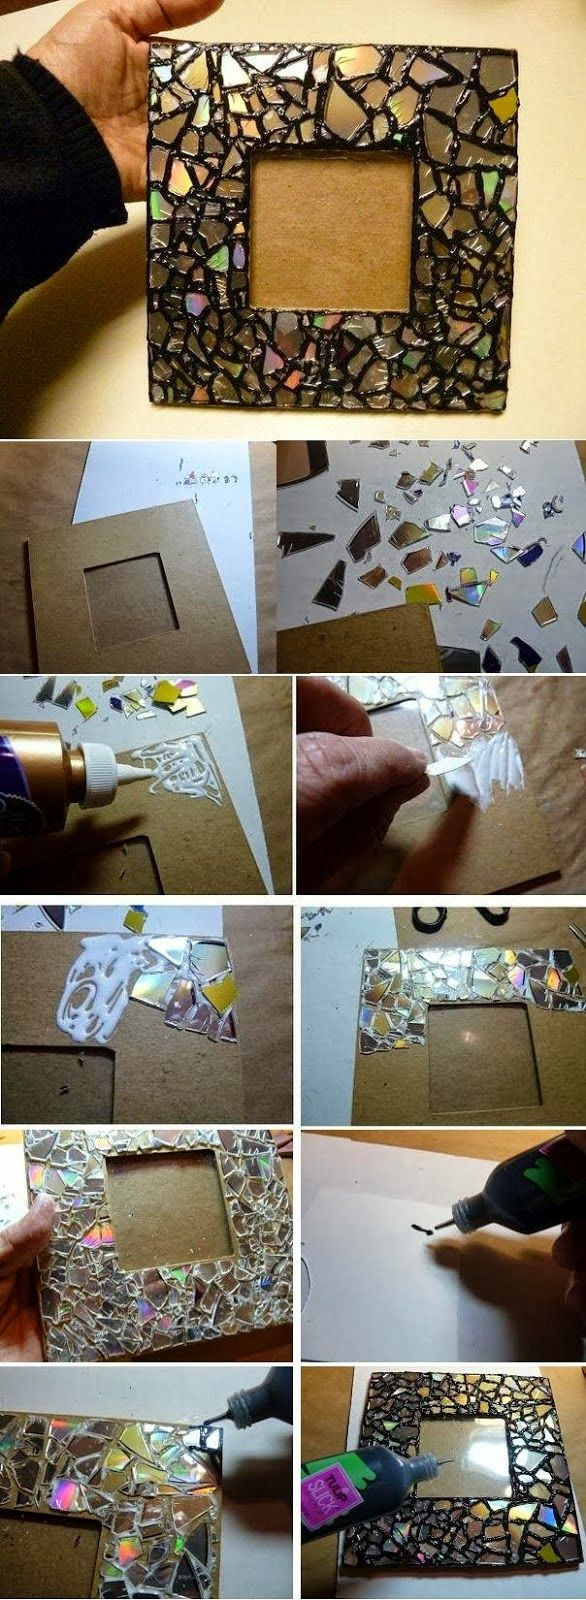 DIY Mosaic is fun to do and